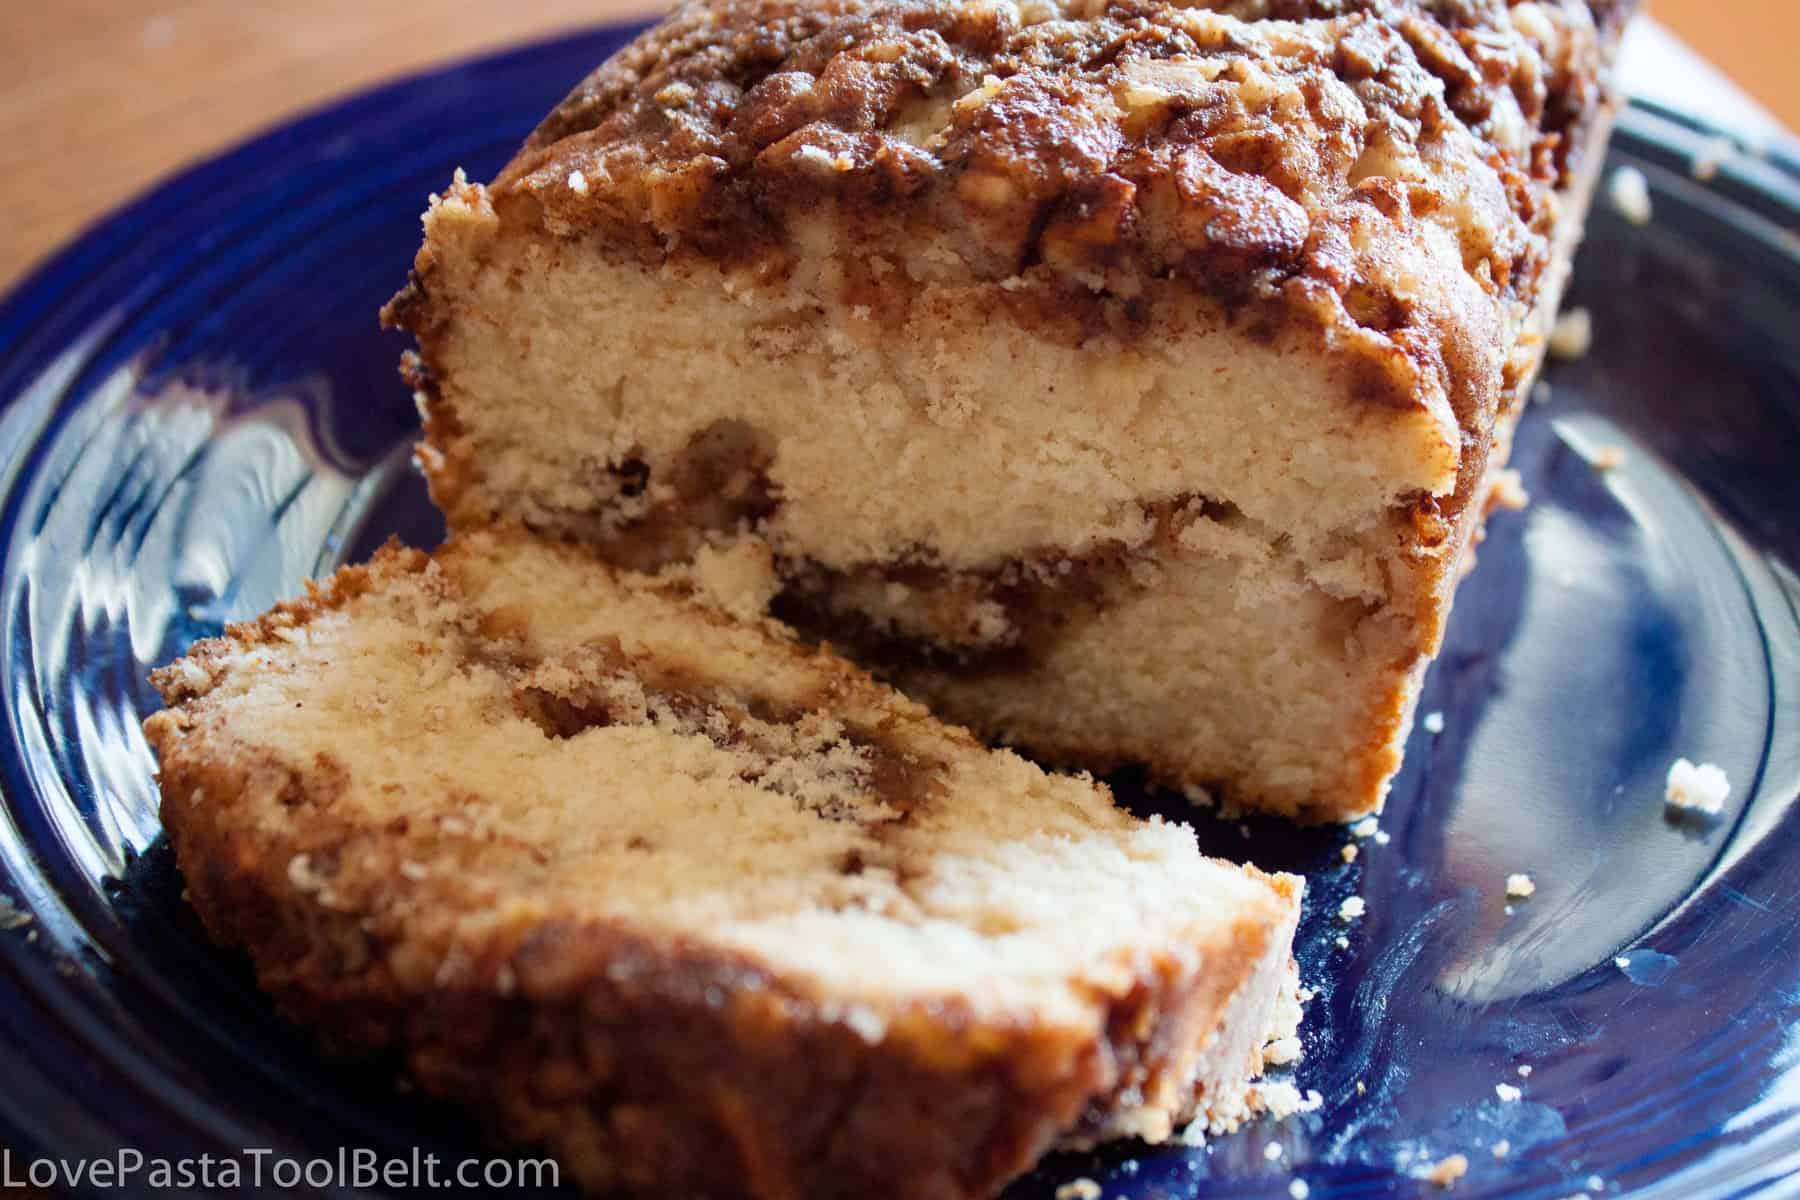 French Toast Casserole - Love, Pasta, and a Tool Belt